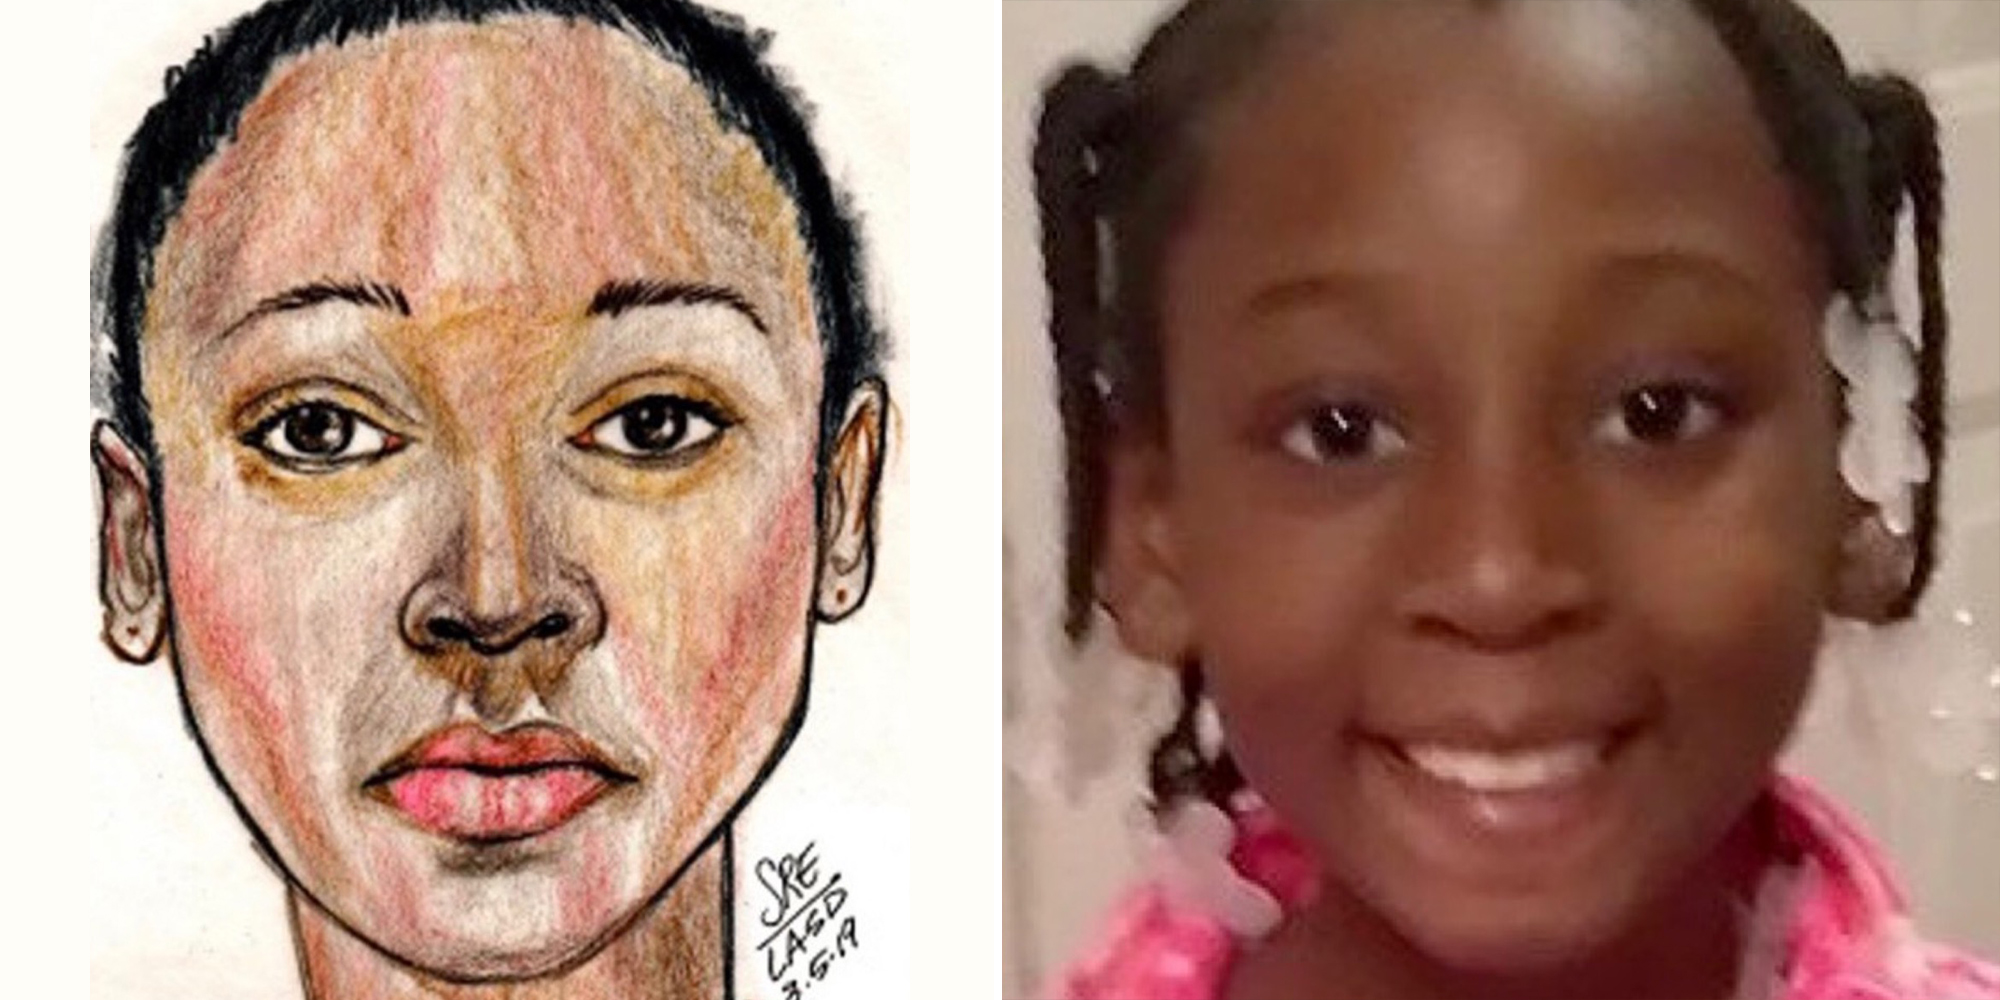 Mother of 9-year-old girl found in duffel bag faces murder charge